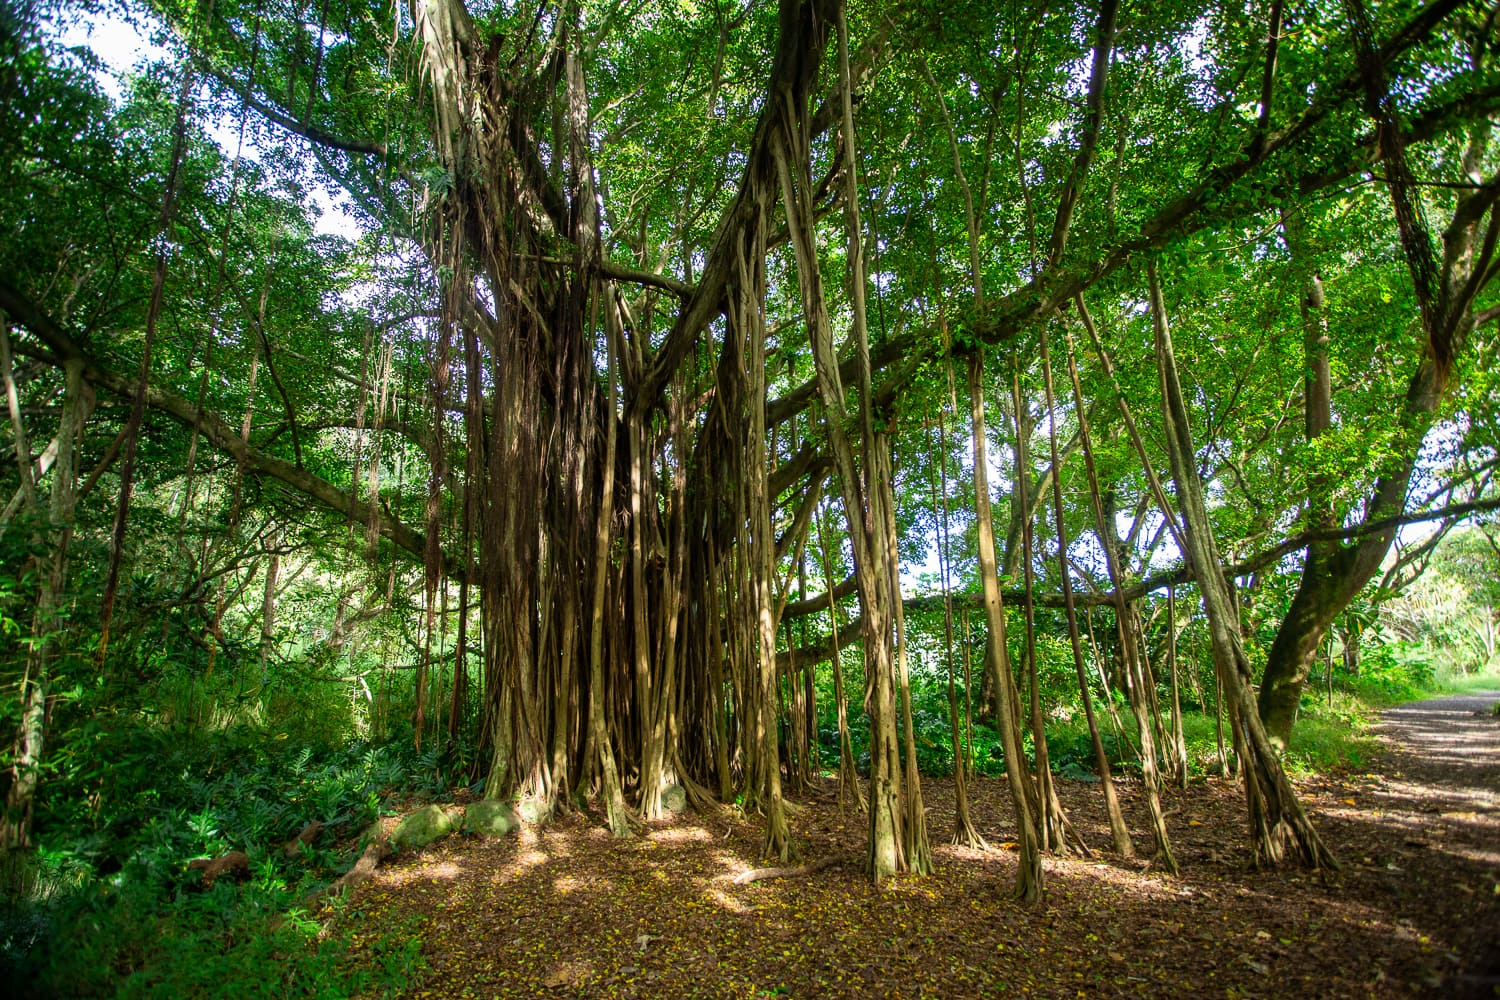 A banyan tree with large trailing buttresses.